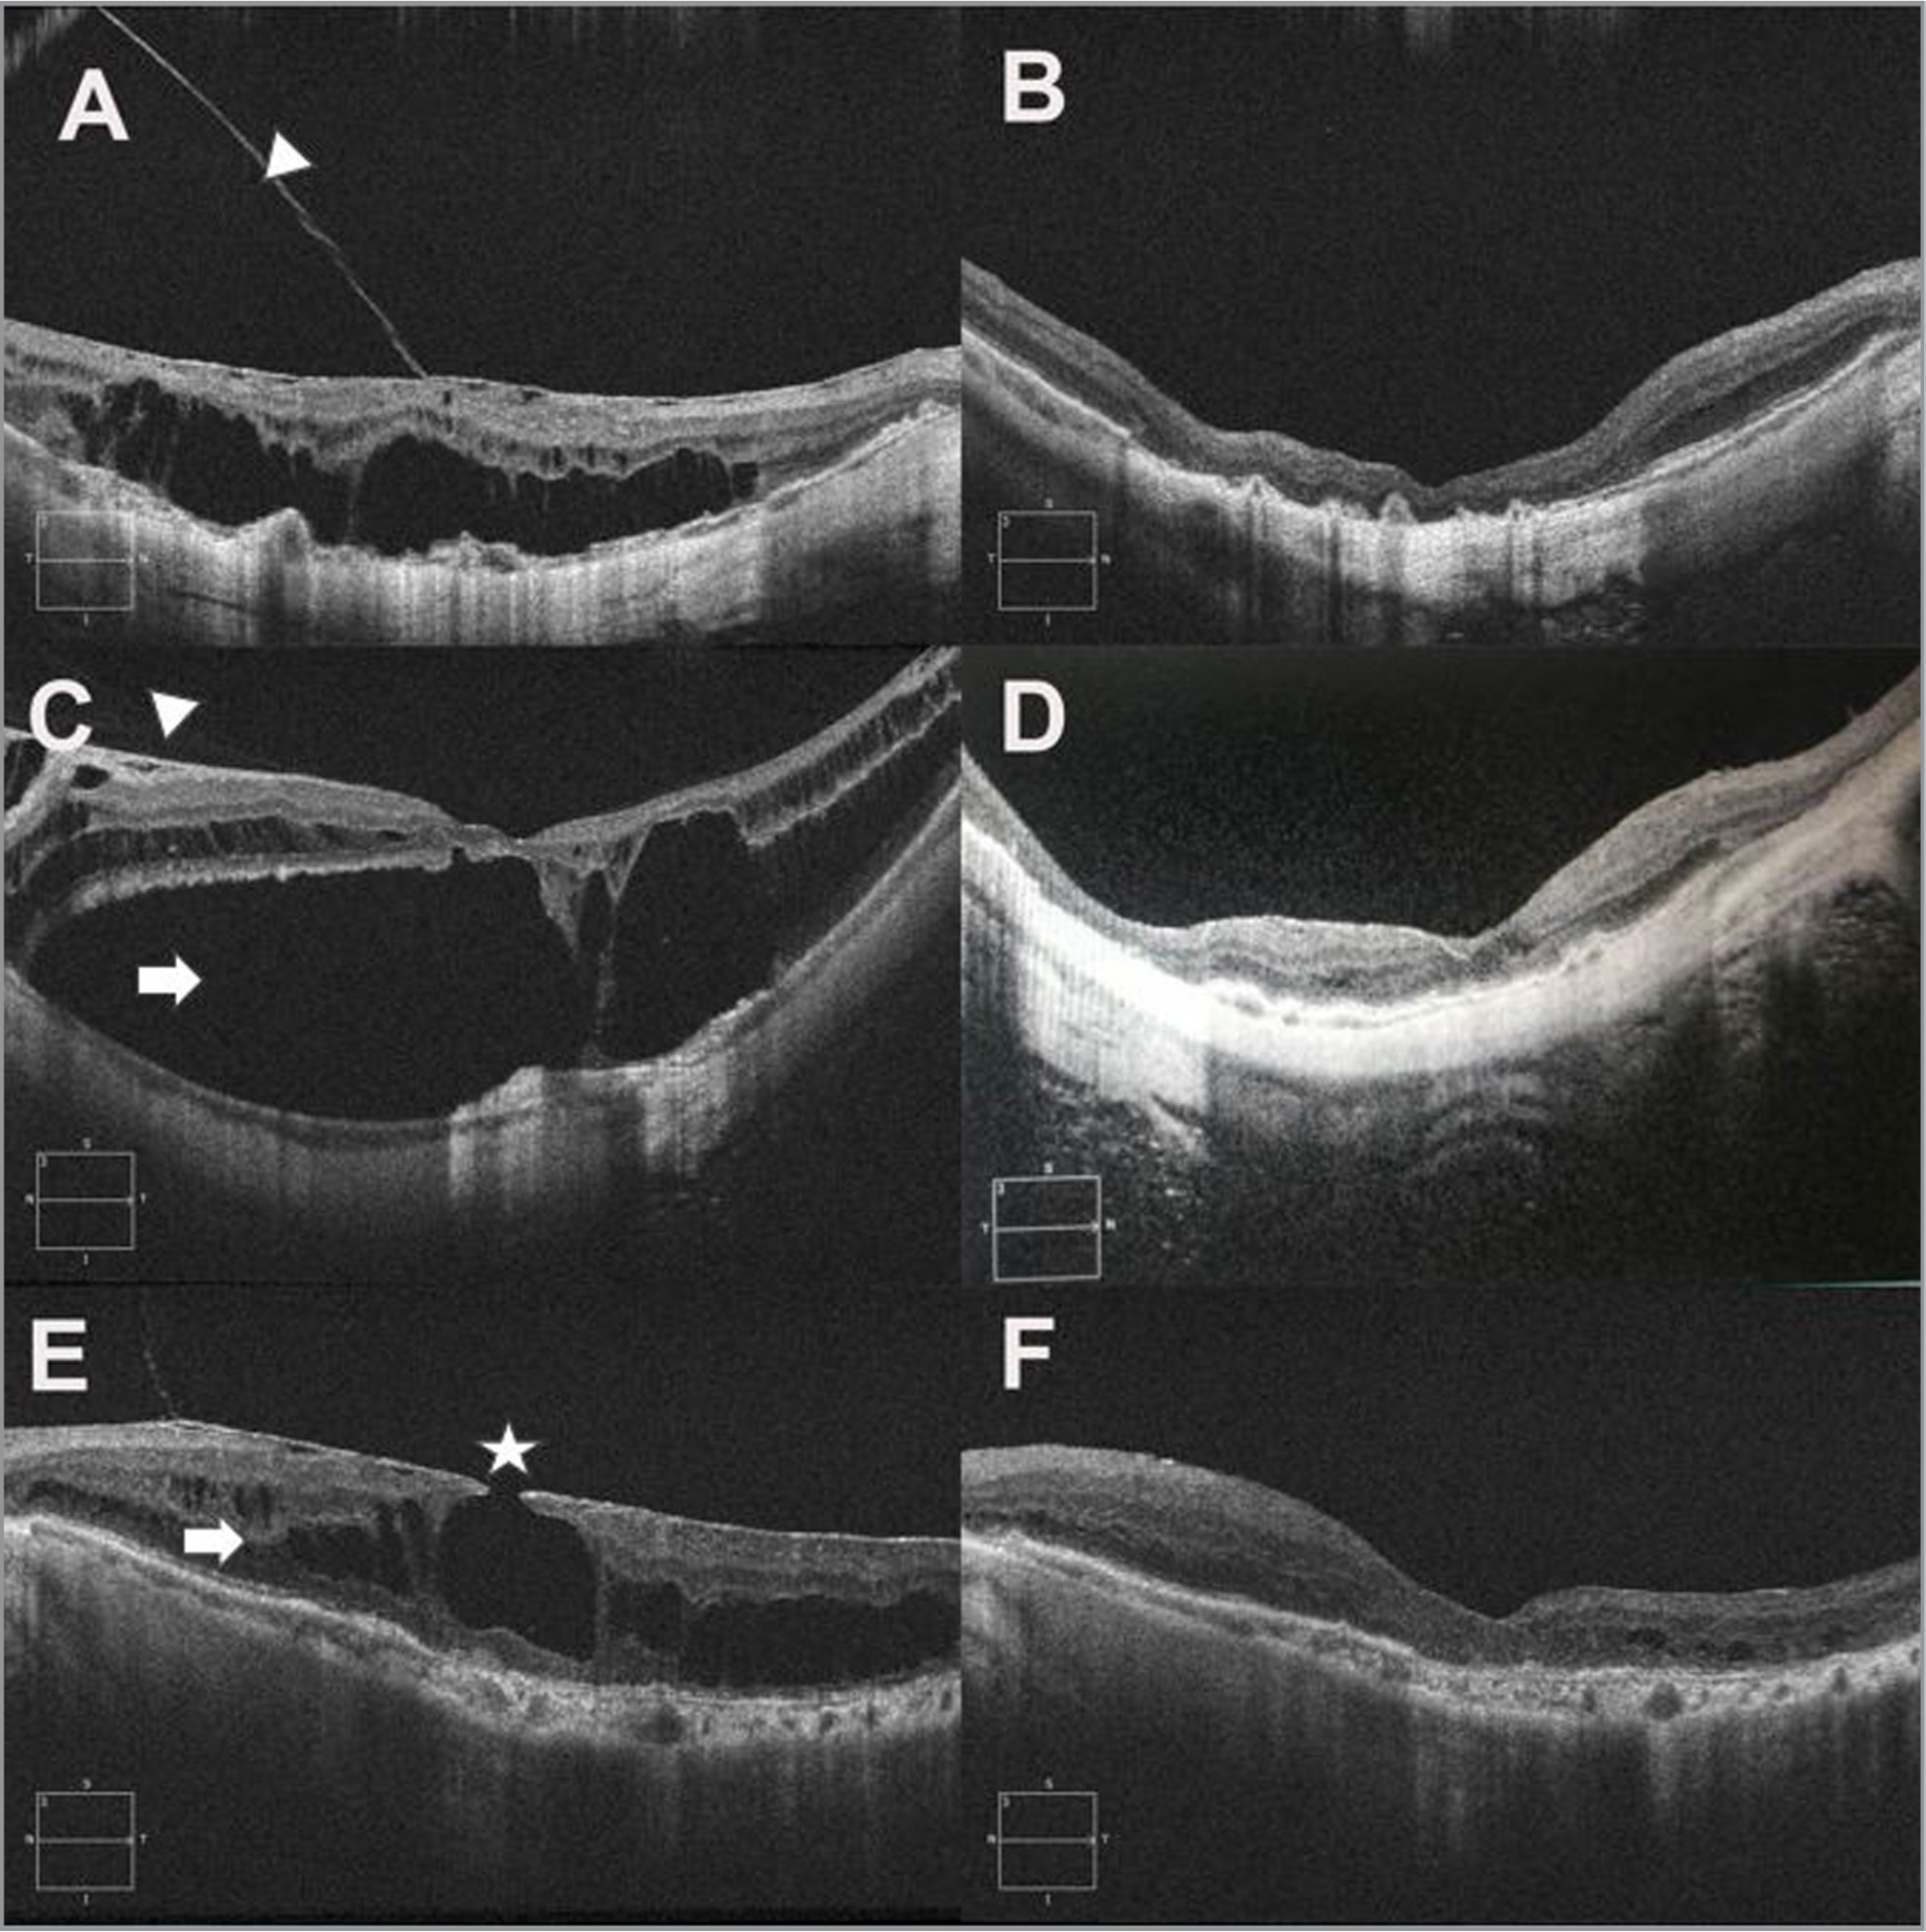 Typical optical coherence tomography images of preoperative and postoperative splitting recovery in the foveal retinoschisis (FS), foveal retinal detachment (FRD), and lamellar macular hole (LMH) groups. (A) Preoperative FS group. (B) The retinoschisis of the FS group resolved 1 month after the operation. (C) Preoperative FRD group. (D) The retinoschisis of the FRD group resolved 3 months after the operation. (E) Preoperative LMH group: myopic traction maculopathy is characterized by rupture of the retinal inner layer at the fovea (white star). (F) The retinoschisis of the LMH group resolved 1 month after the operation. A partially detached but intact epiretinal membrane (white arrowheads) and stable macular retinoschisis (white arrows) can be seen preoperatively.